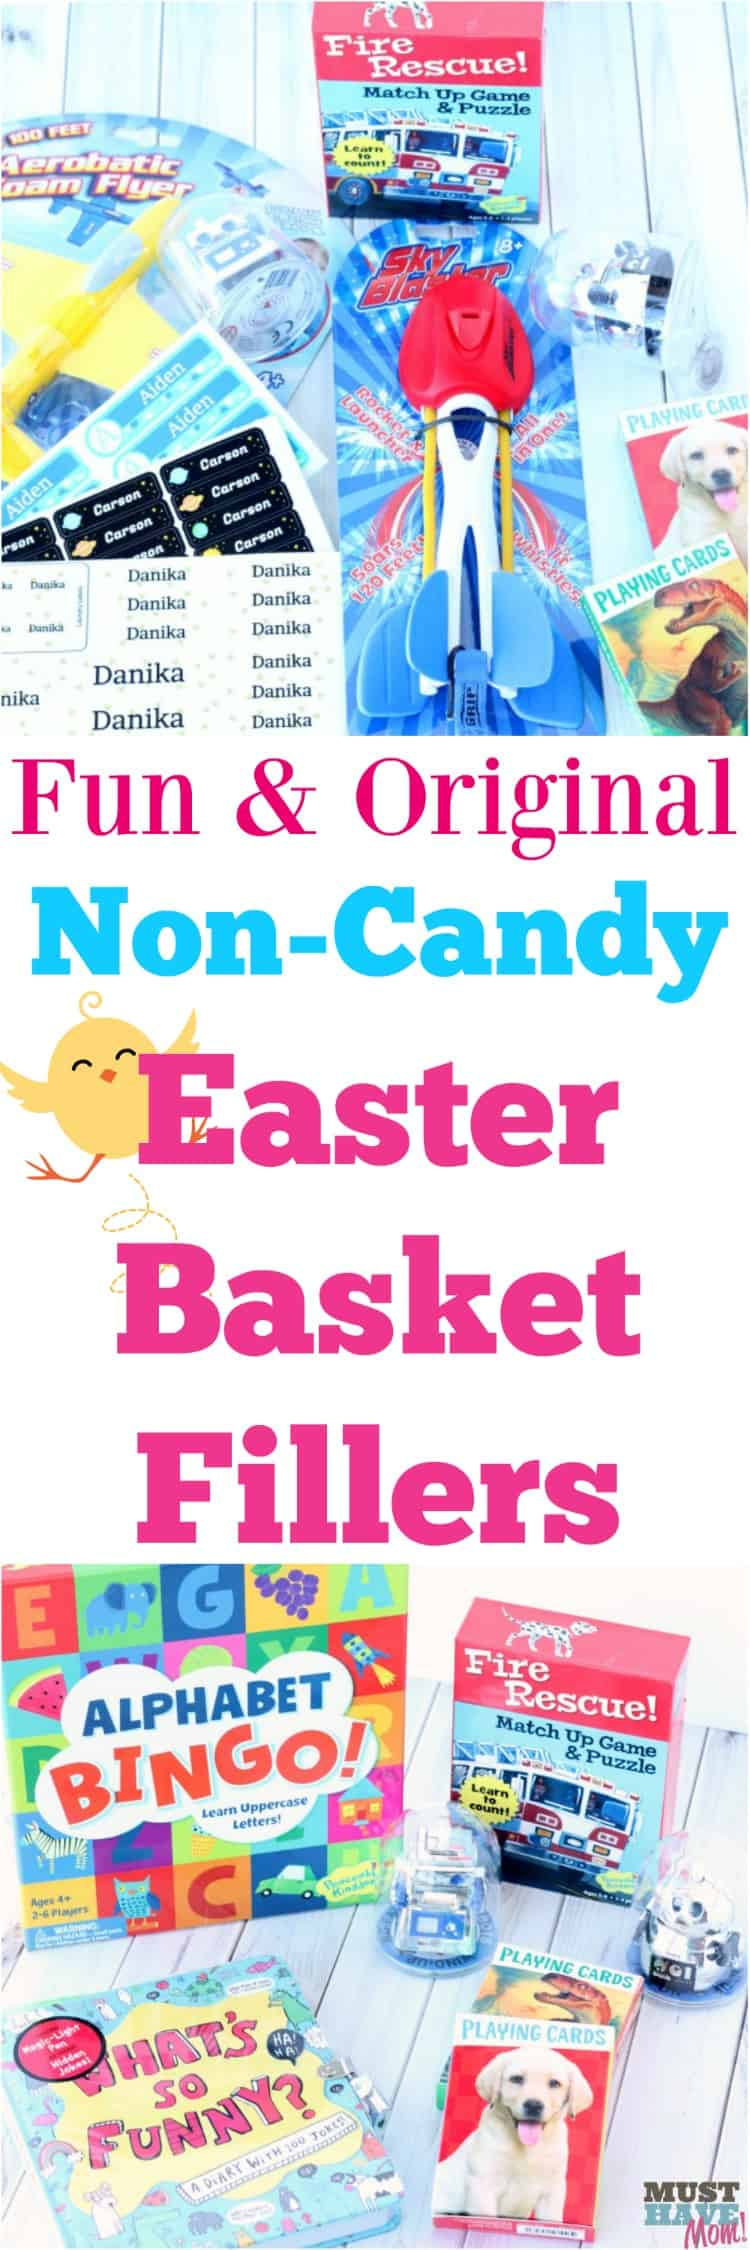 Fun and Original Easter basket fillers that aren't candy! Grab these non-candy Easter basket ideas for your kiddo!